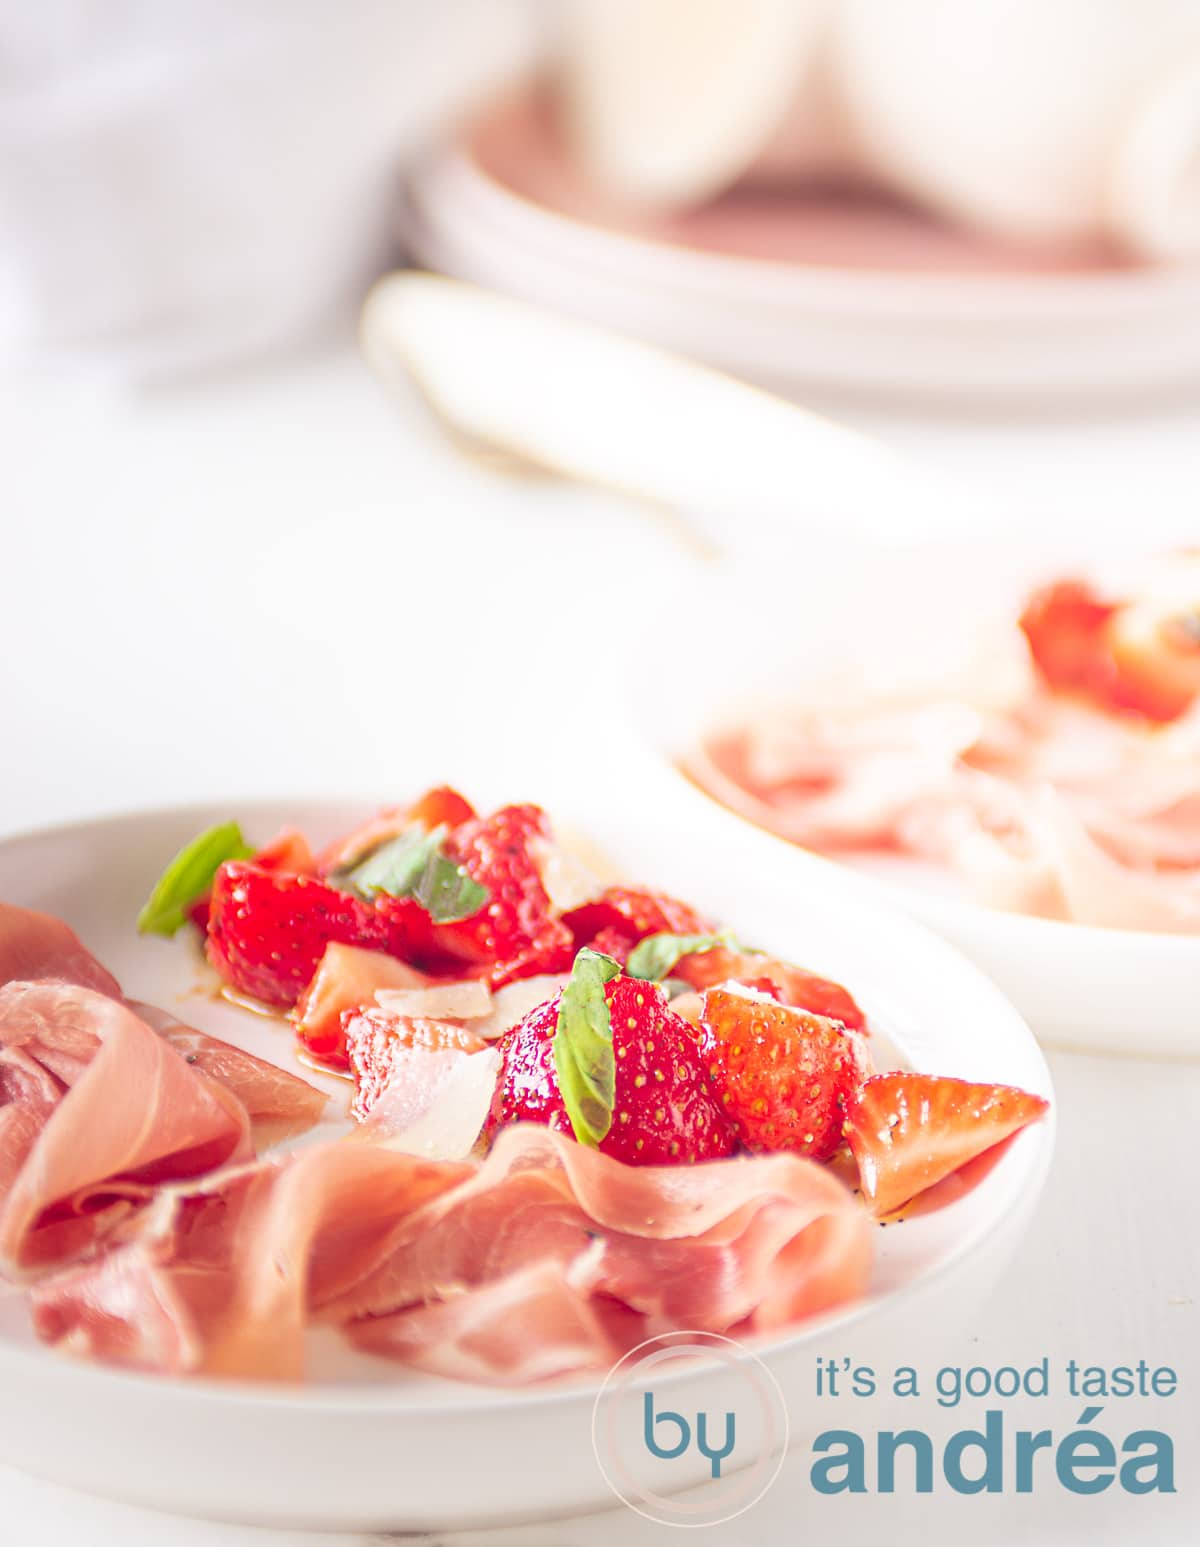 Marinated strawberries and Parmaham on a white plate with plates in the background